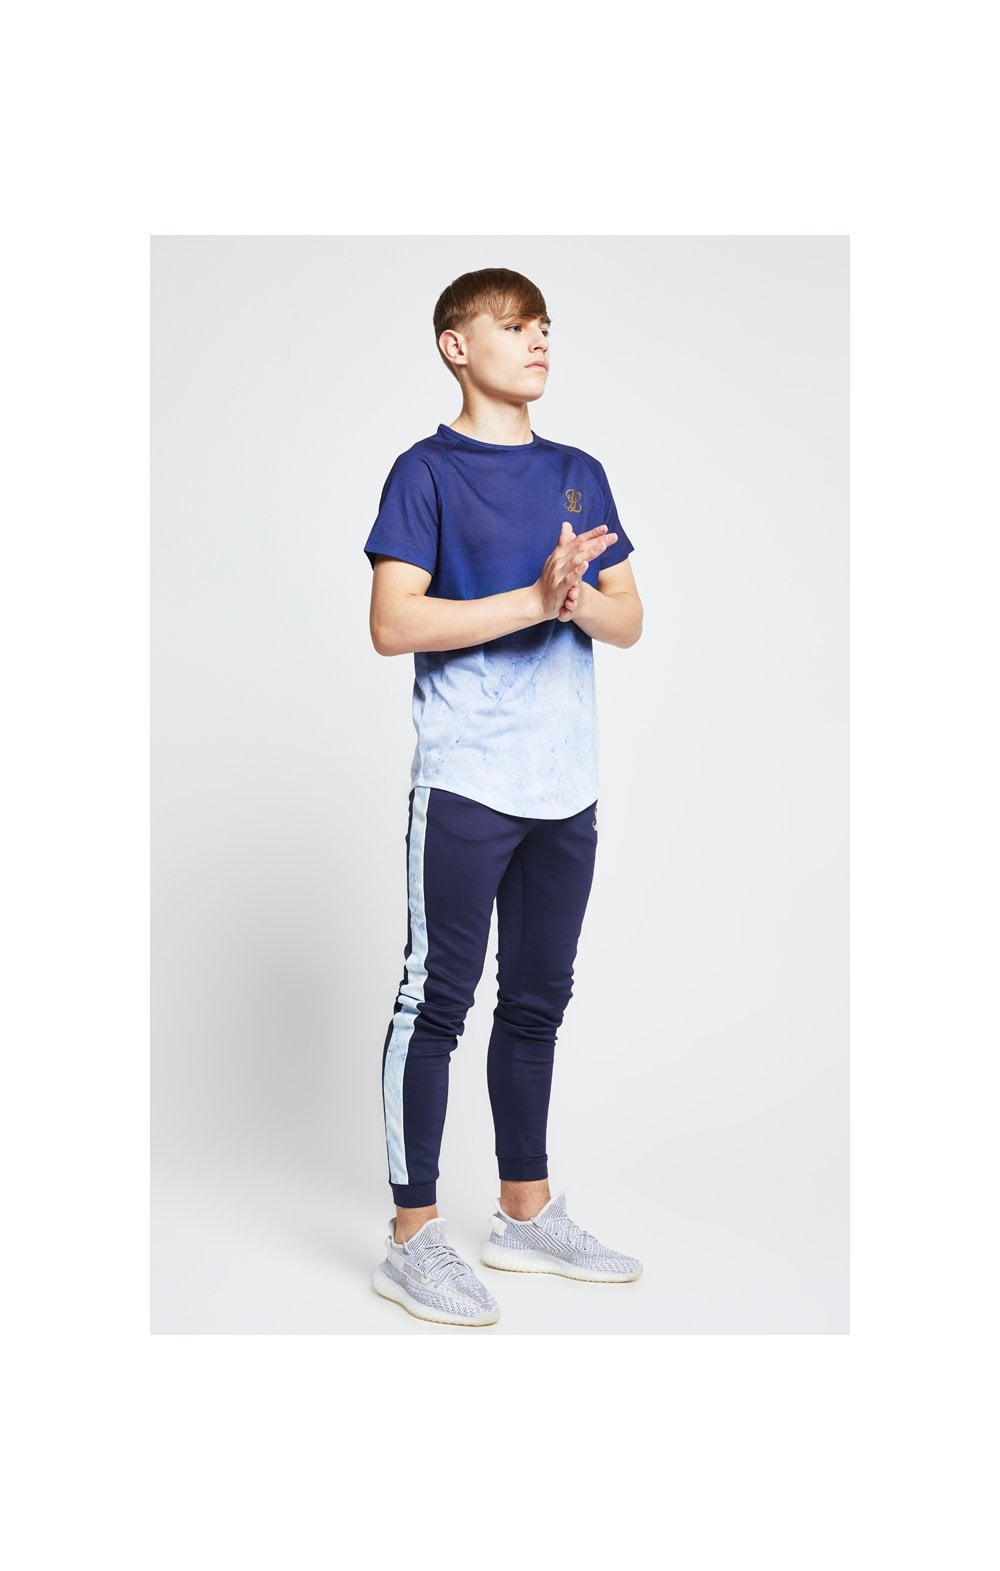 Illusive London Marble Fade Tee – Navy & Marble (3)